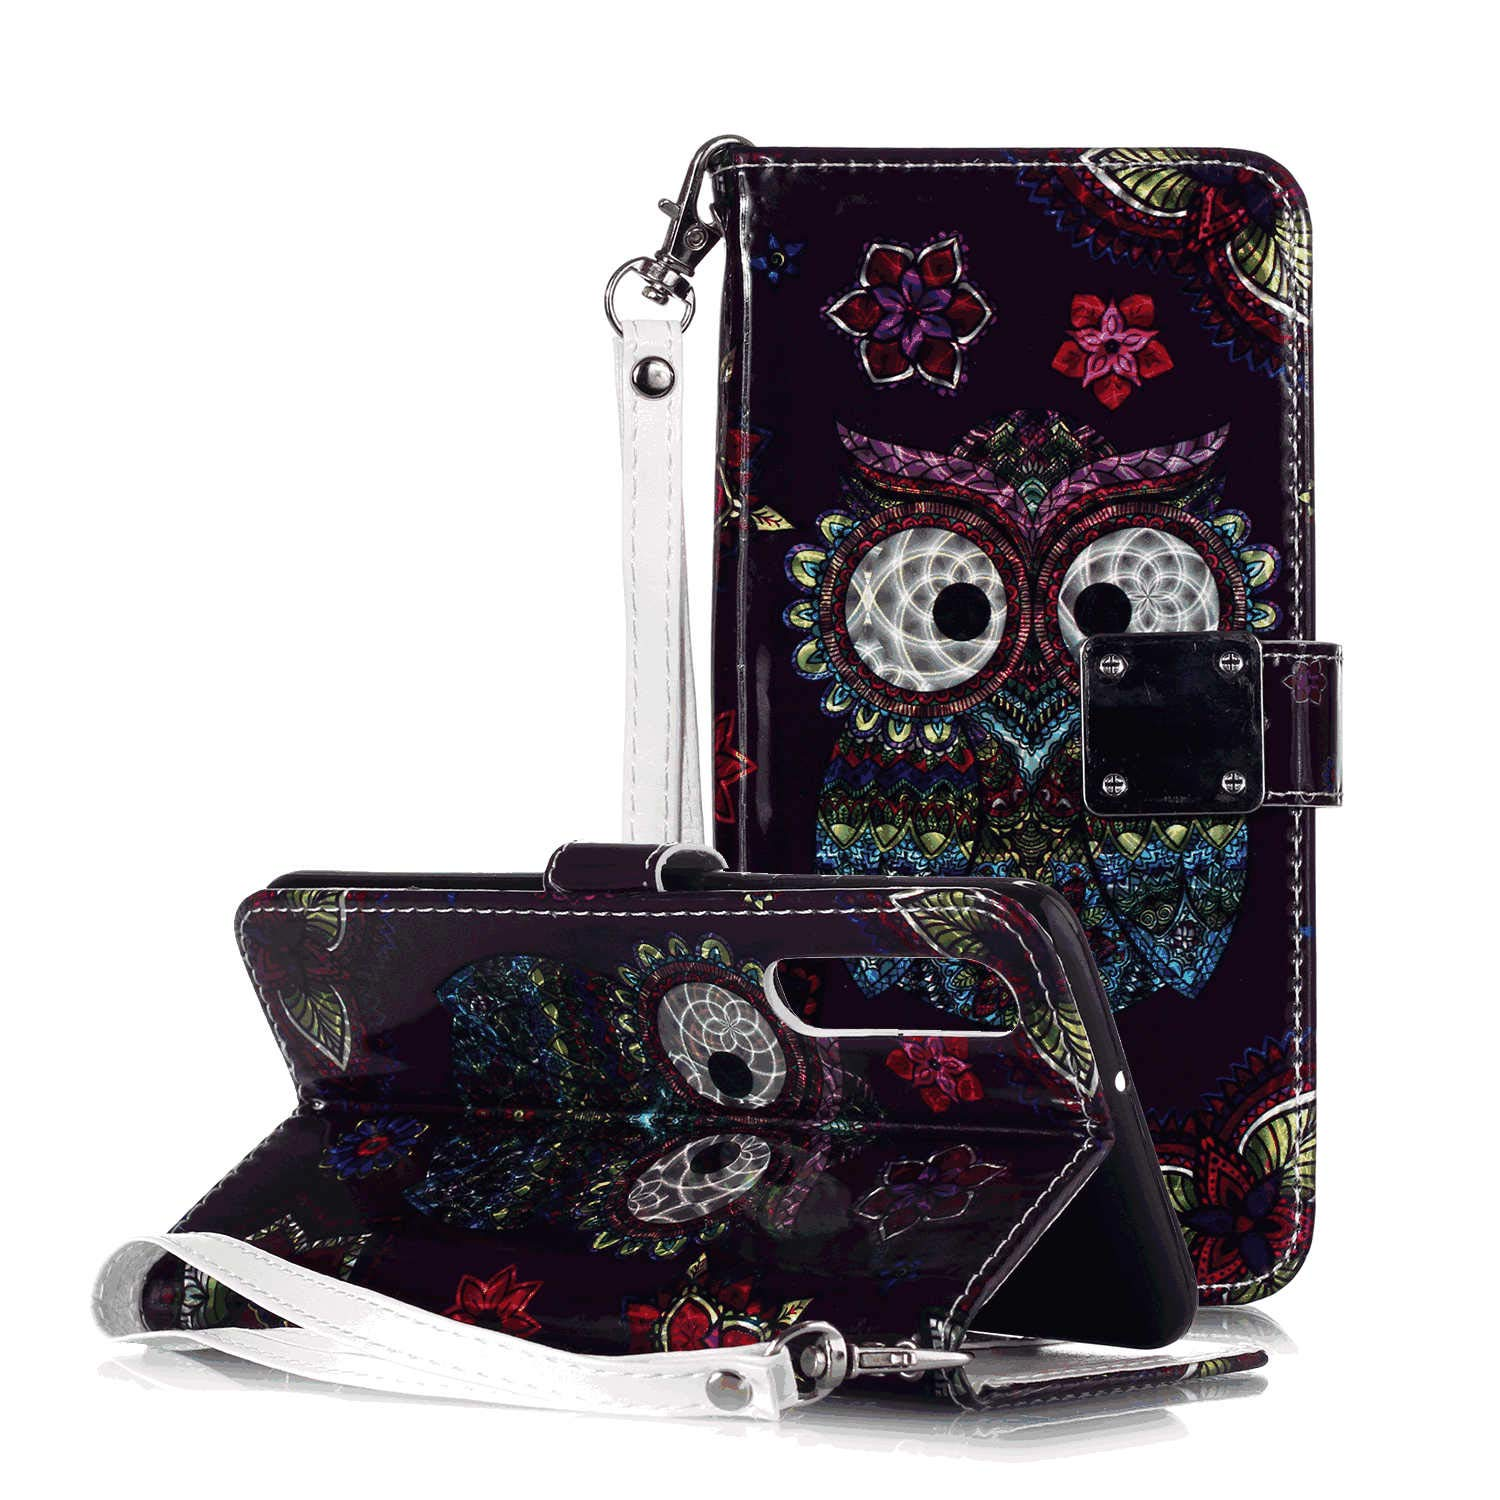 Simple Flip Case Fit for iPhone XR Skull Leather Cover Wallet for iPhone XR